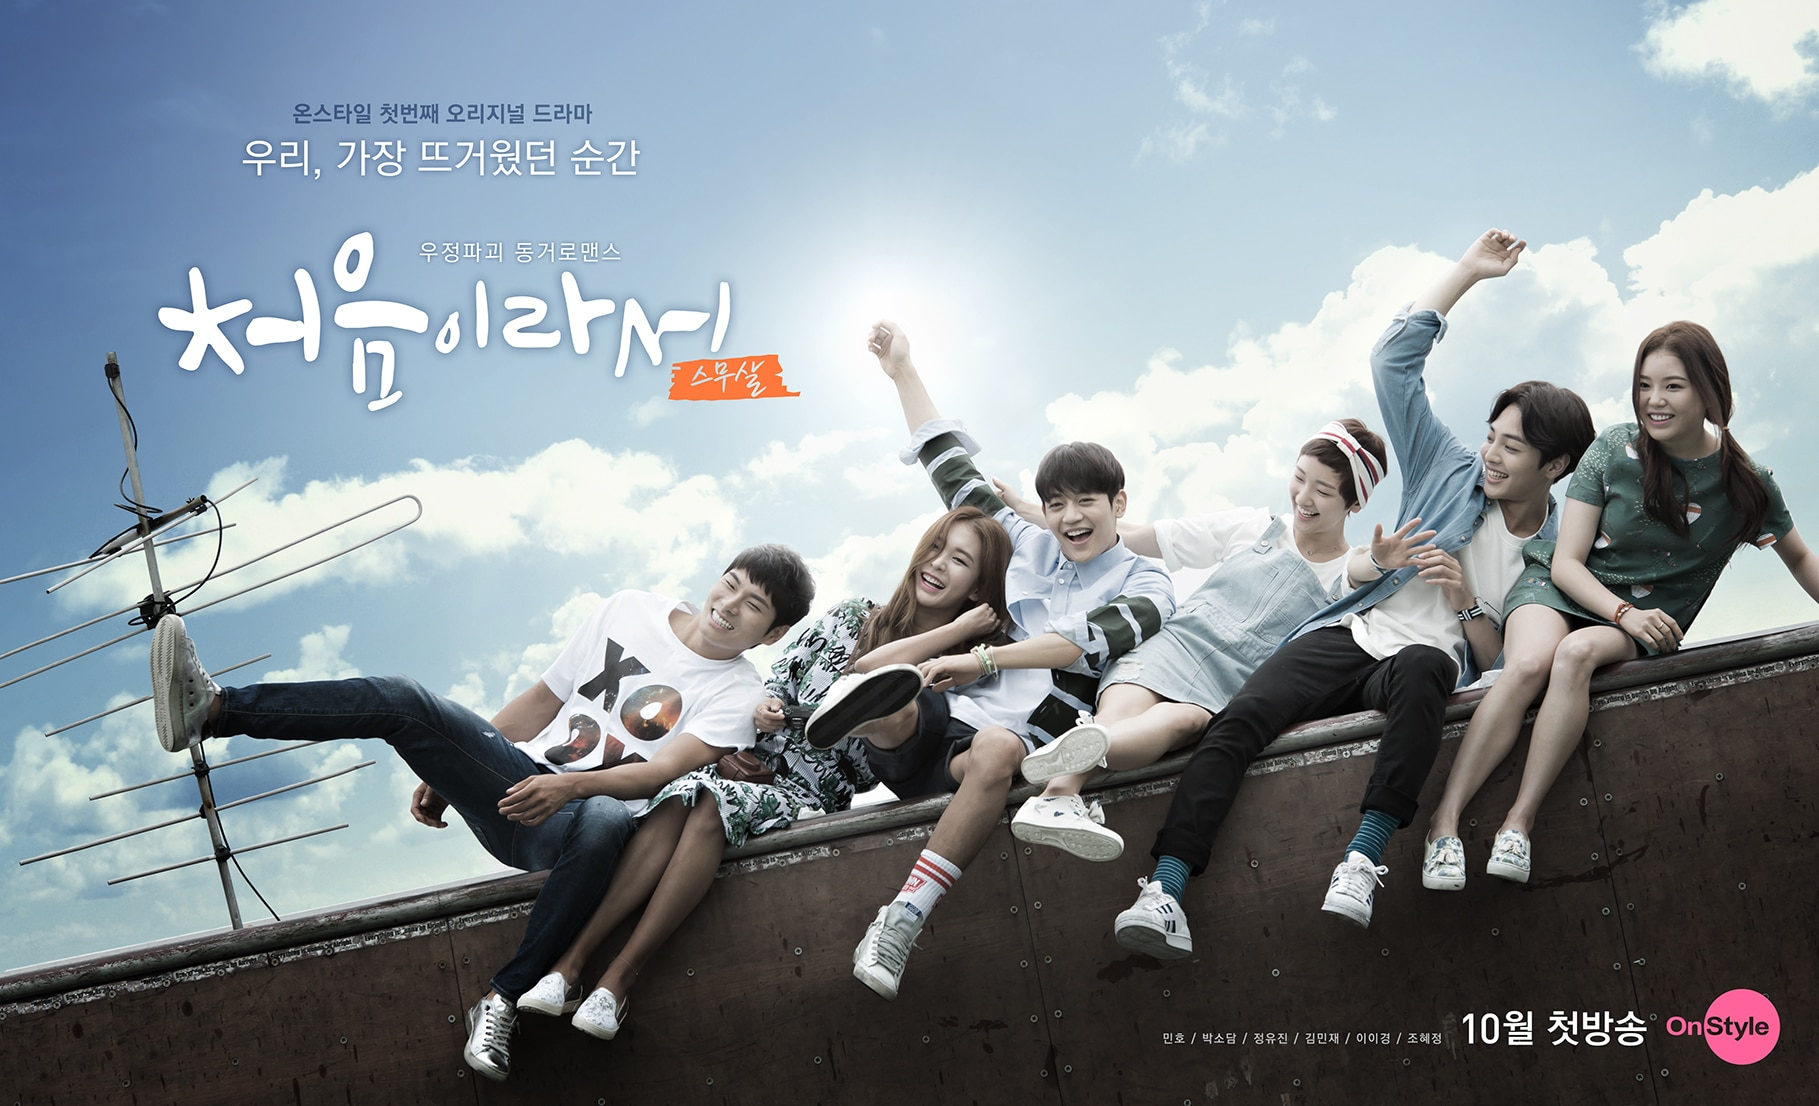 http://www.koreandrama.org/wp-content/uploads/2015/09/Because-It%E2%80%99s-the-First-Time-Poster1.jpg